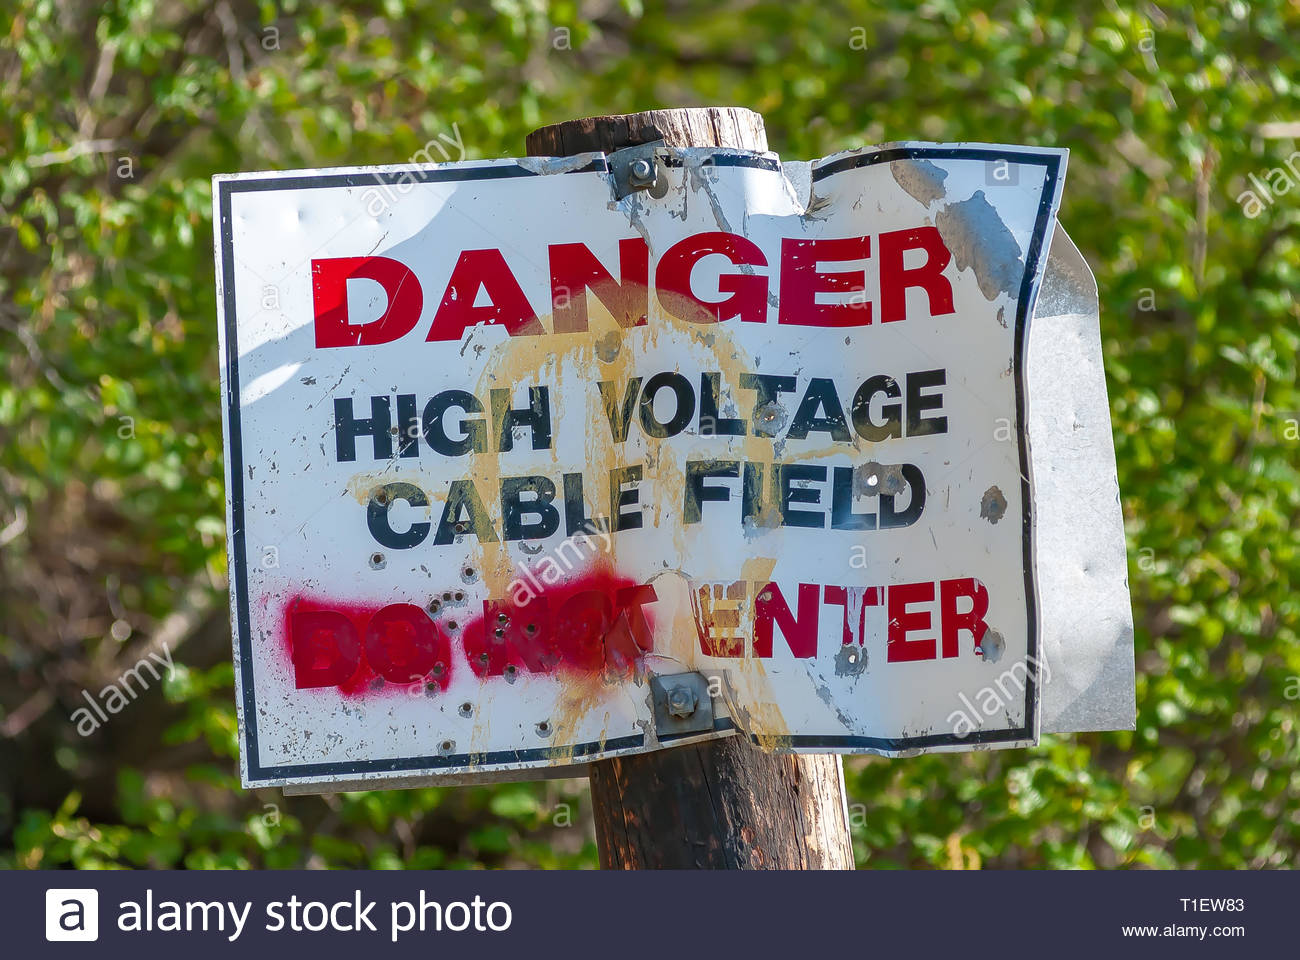 Danger High Voltage Cable Field Do Not Enter Sign in rough shape after being graffitied and shot full of holes. - Stock Image